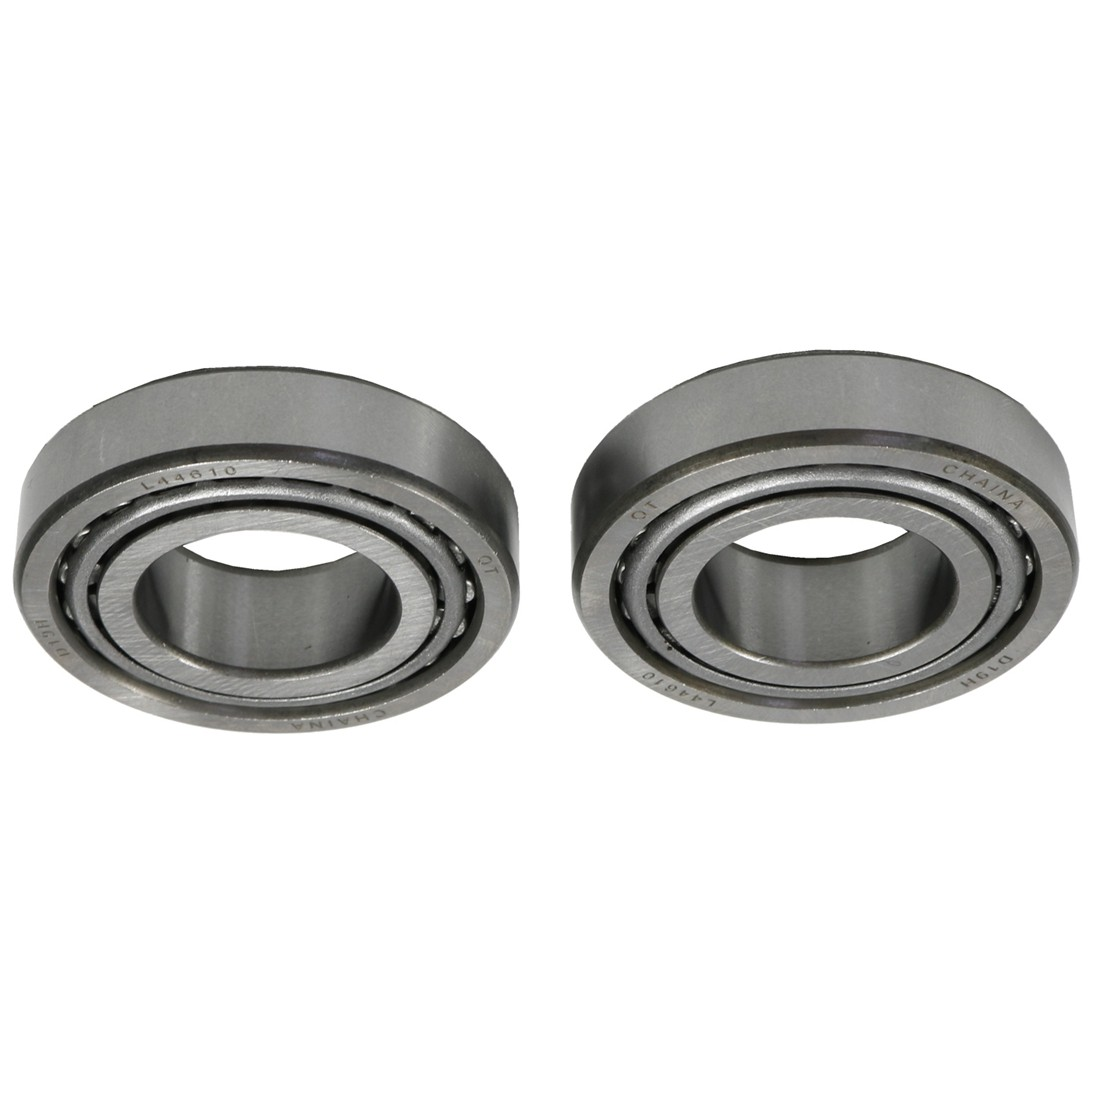 Buy NTN Ball Insert Bearings UC205-100d1 Direct From Bearing Factory